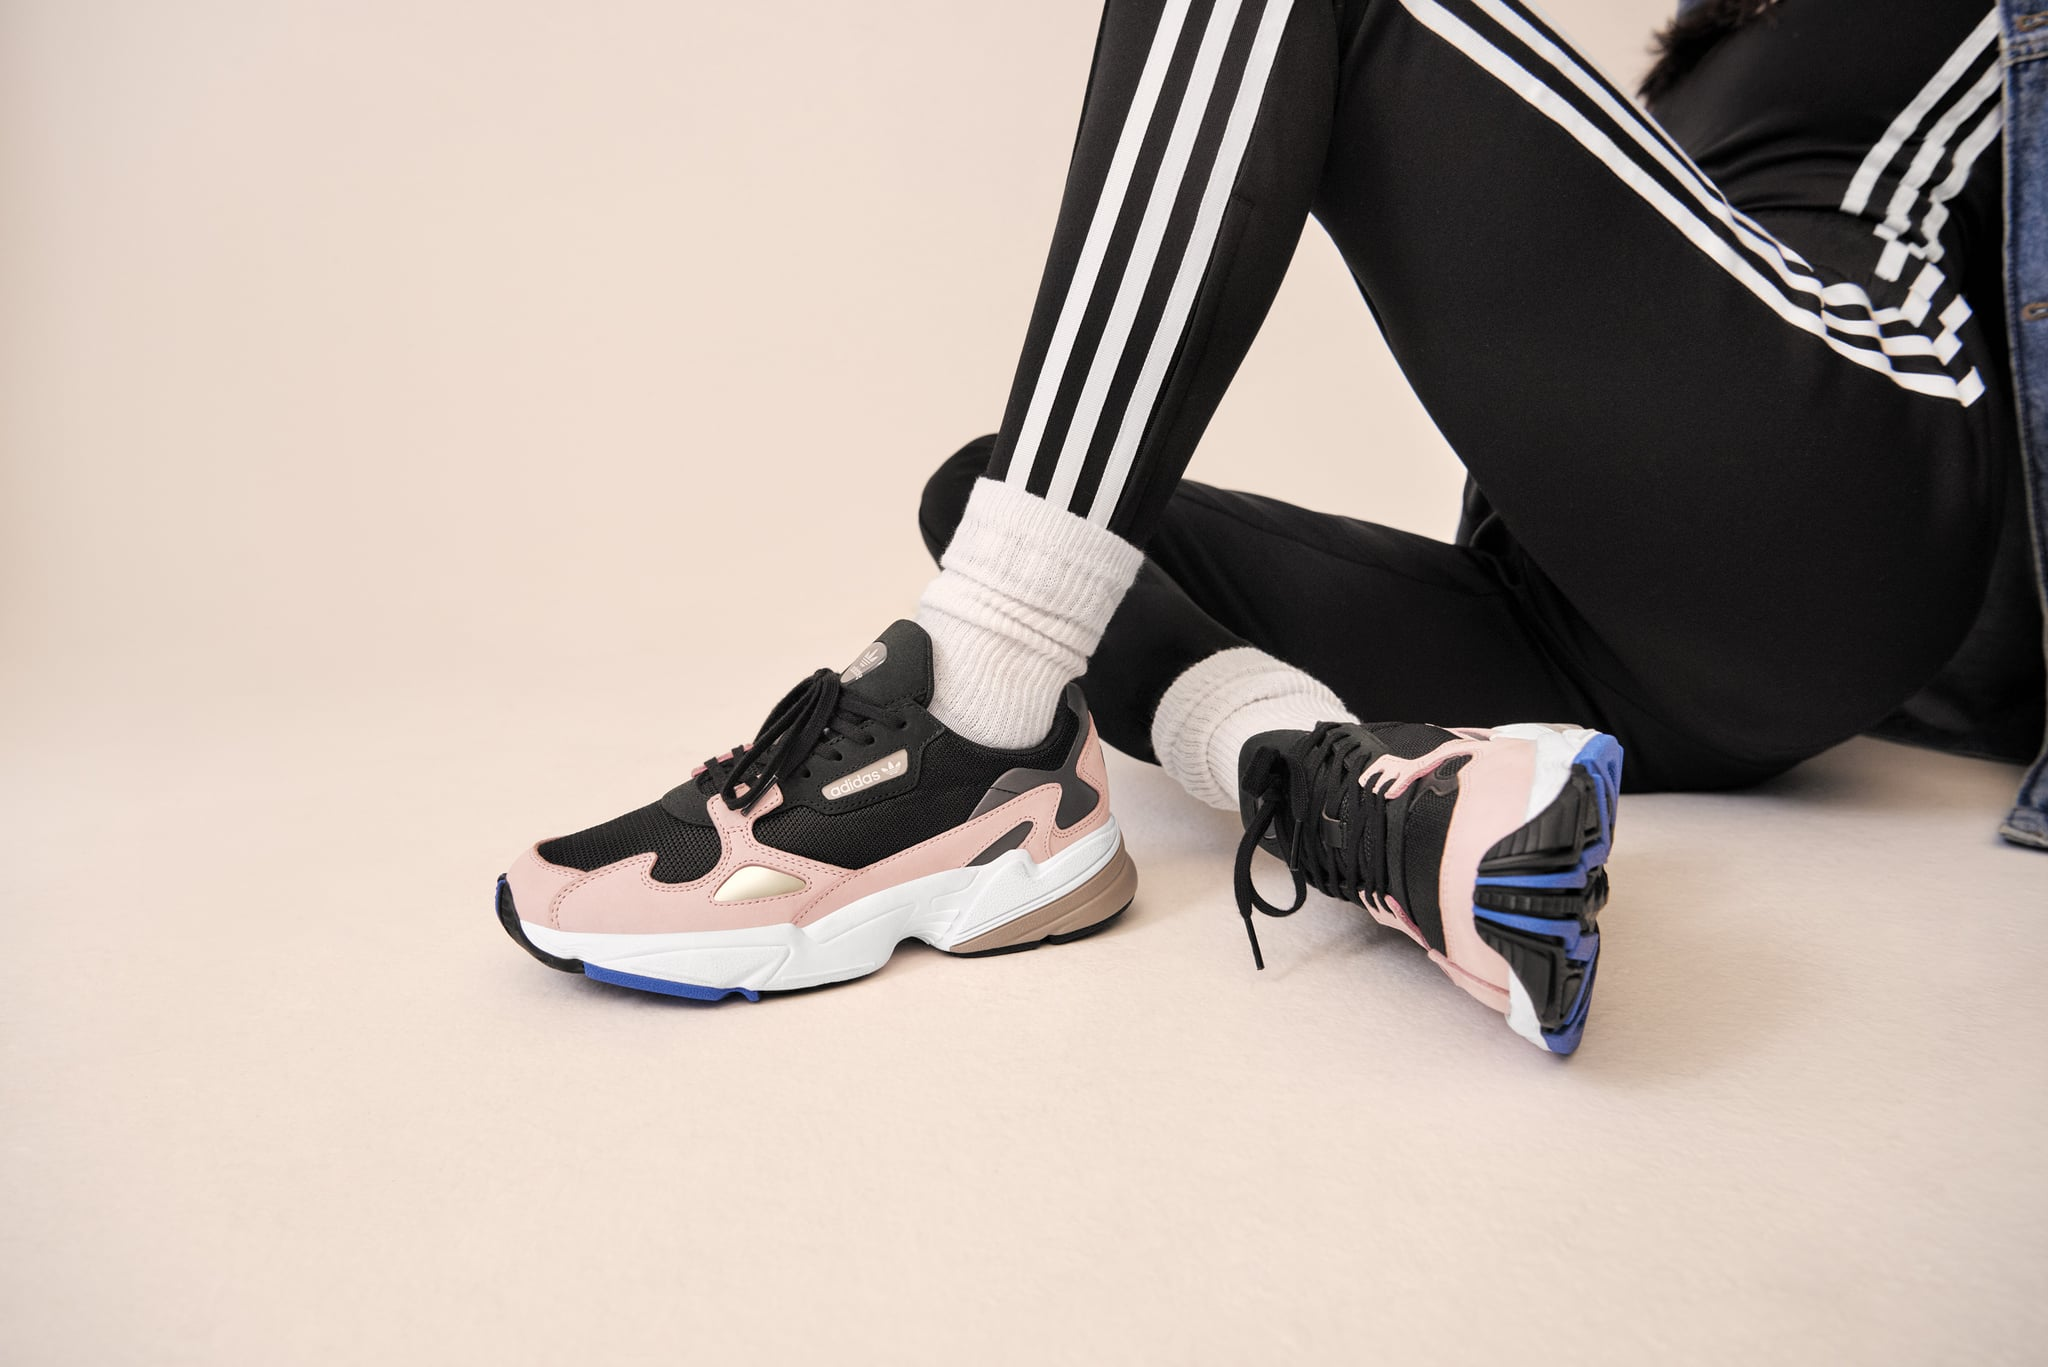 kylie falcon sneakers